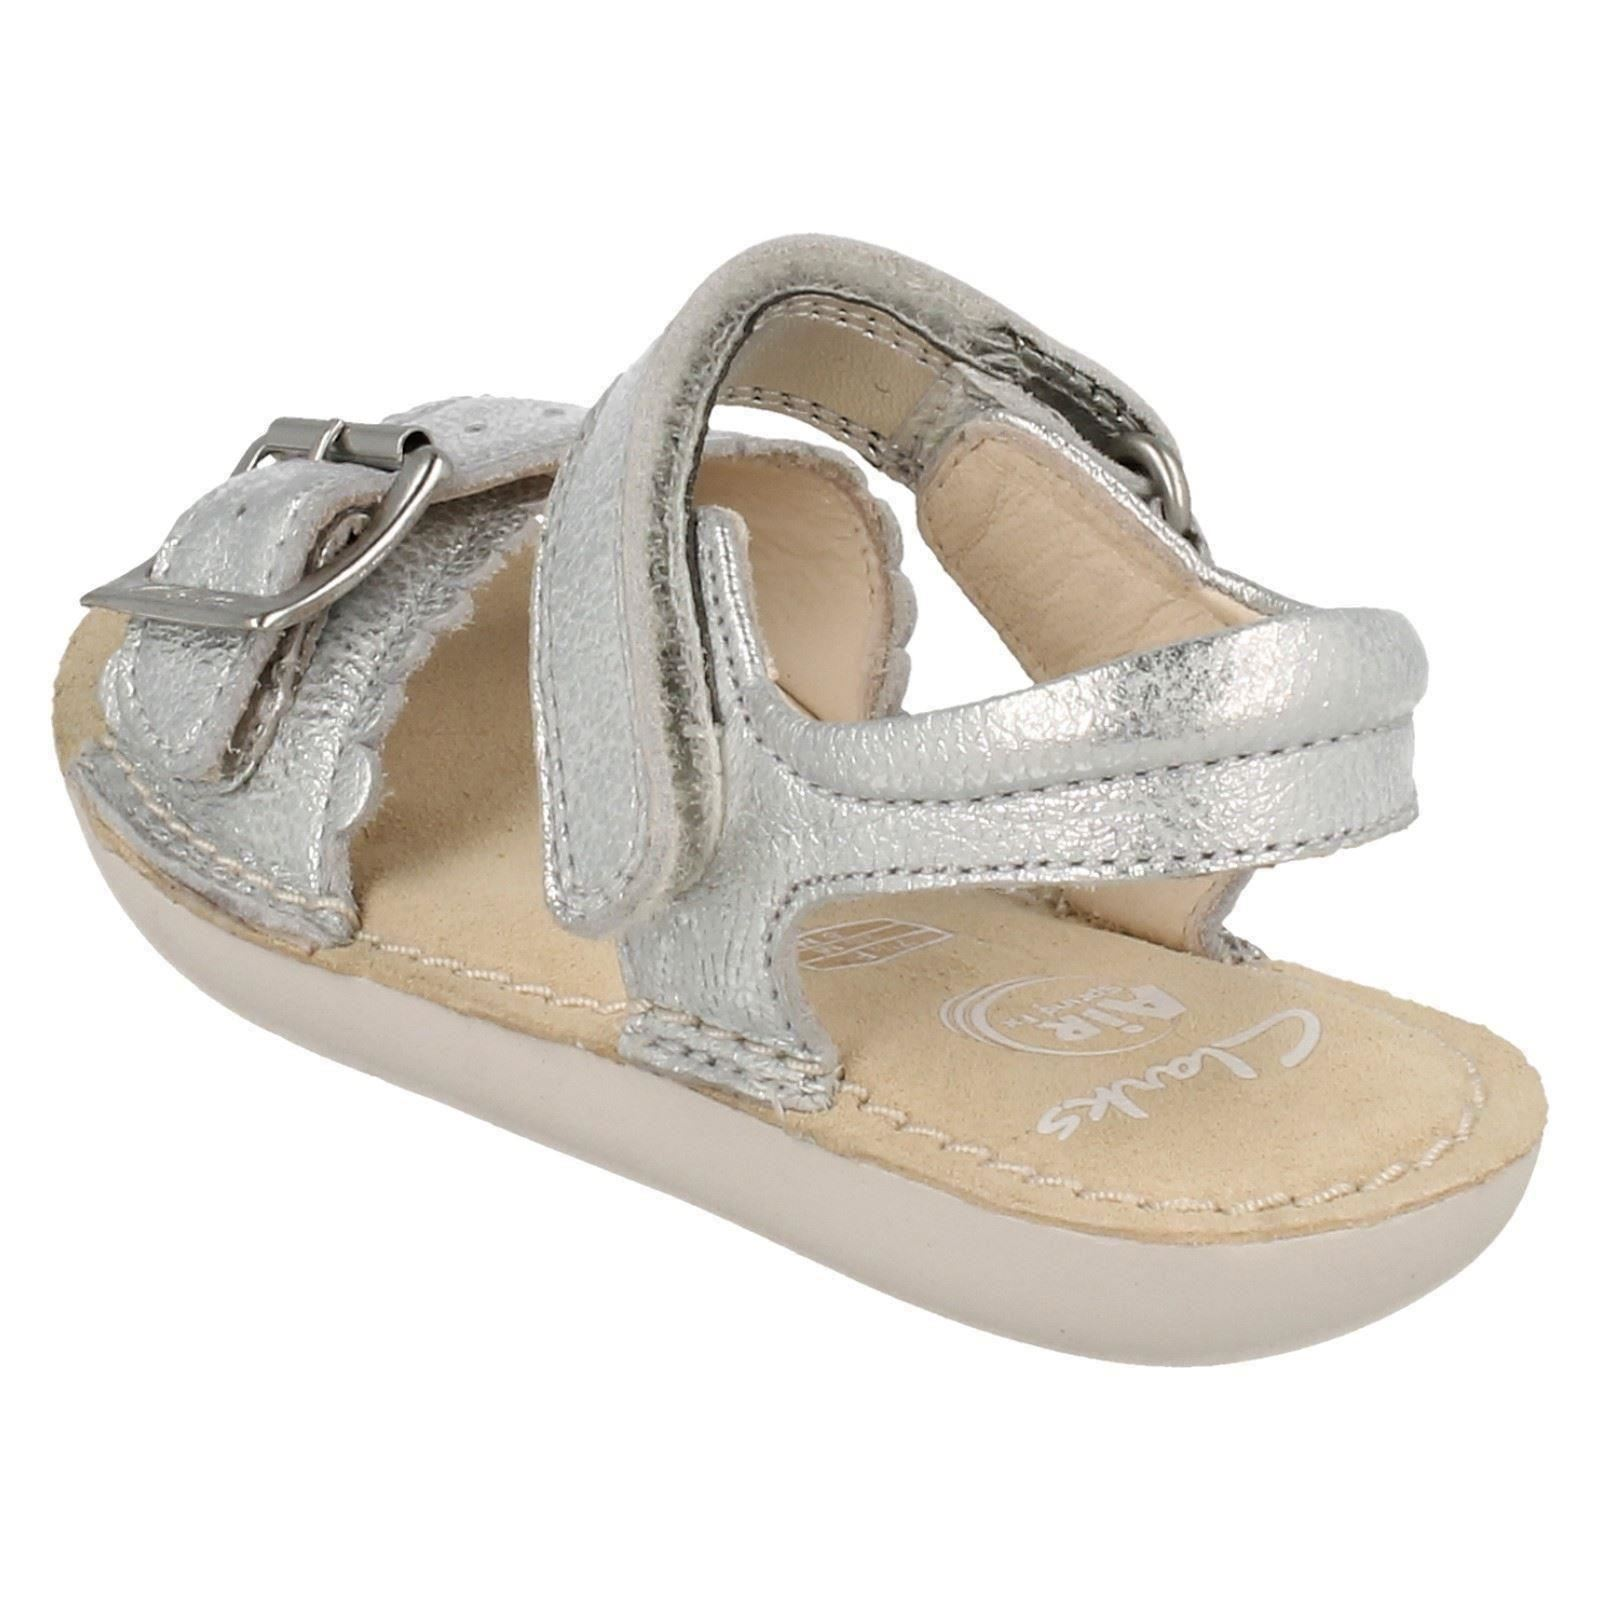 Girls Clarks Leather Buckle Strap Sandals Ivy Blossom